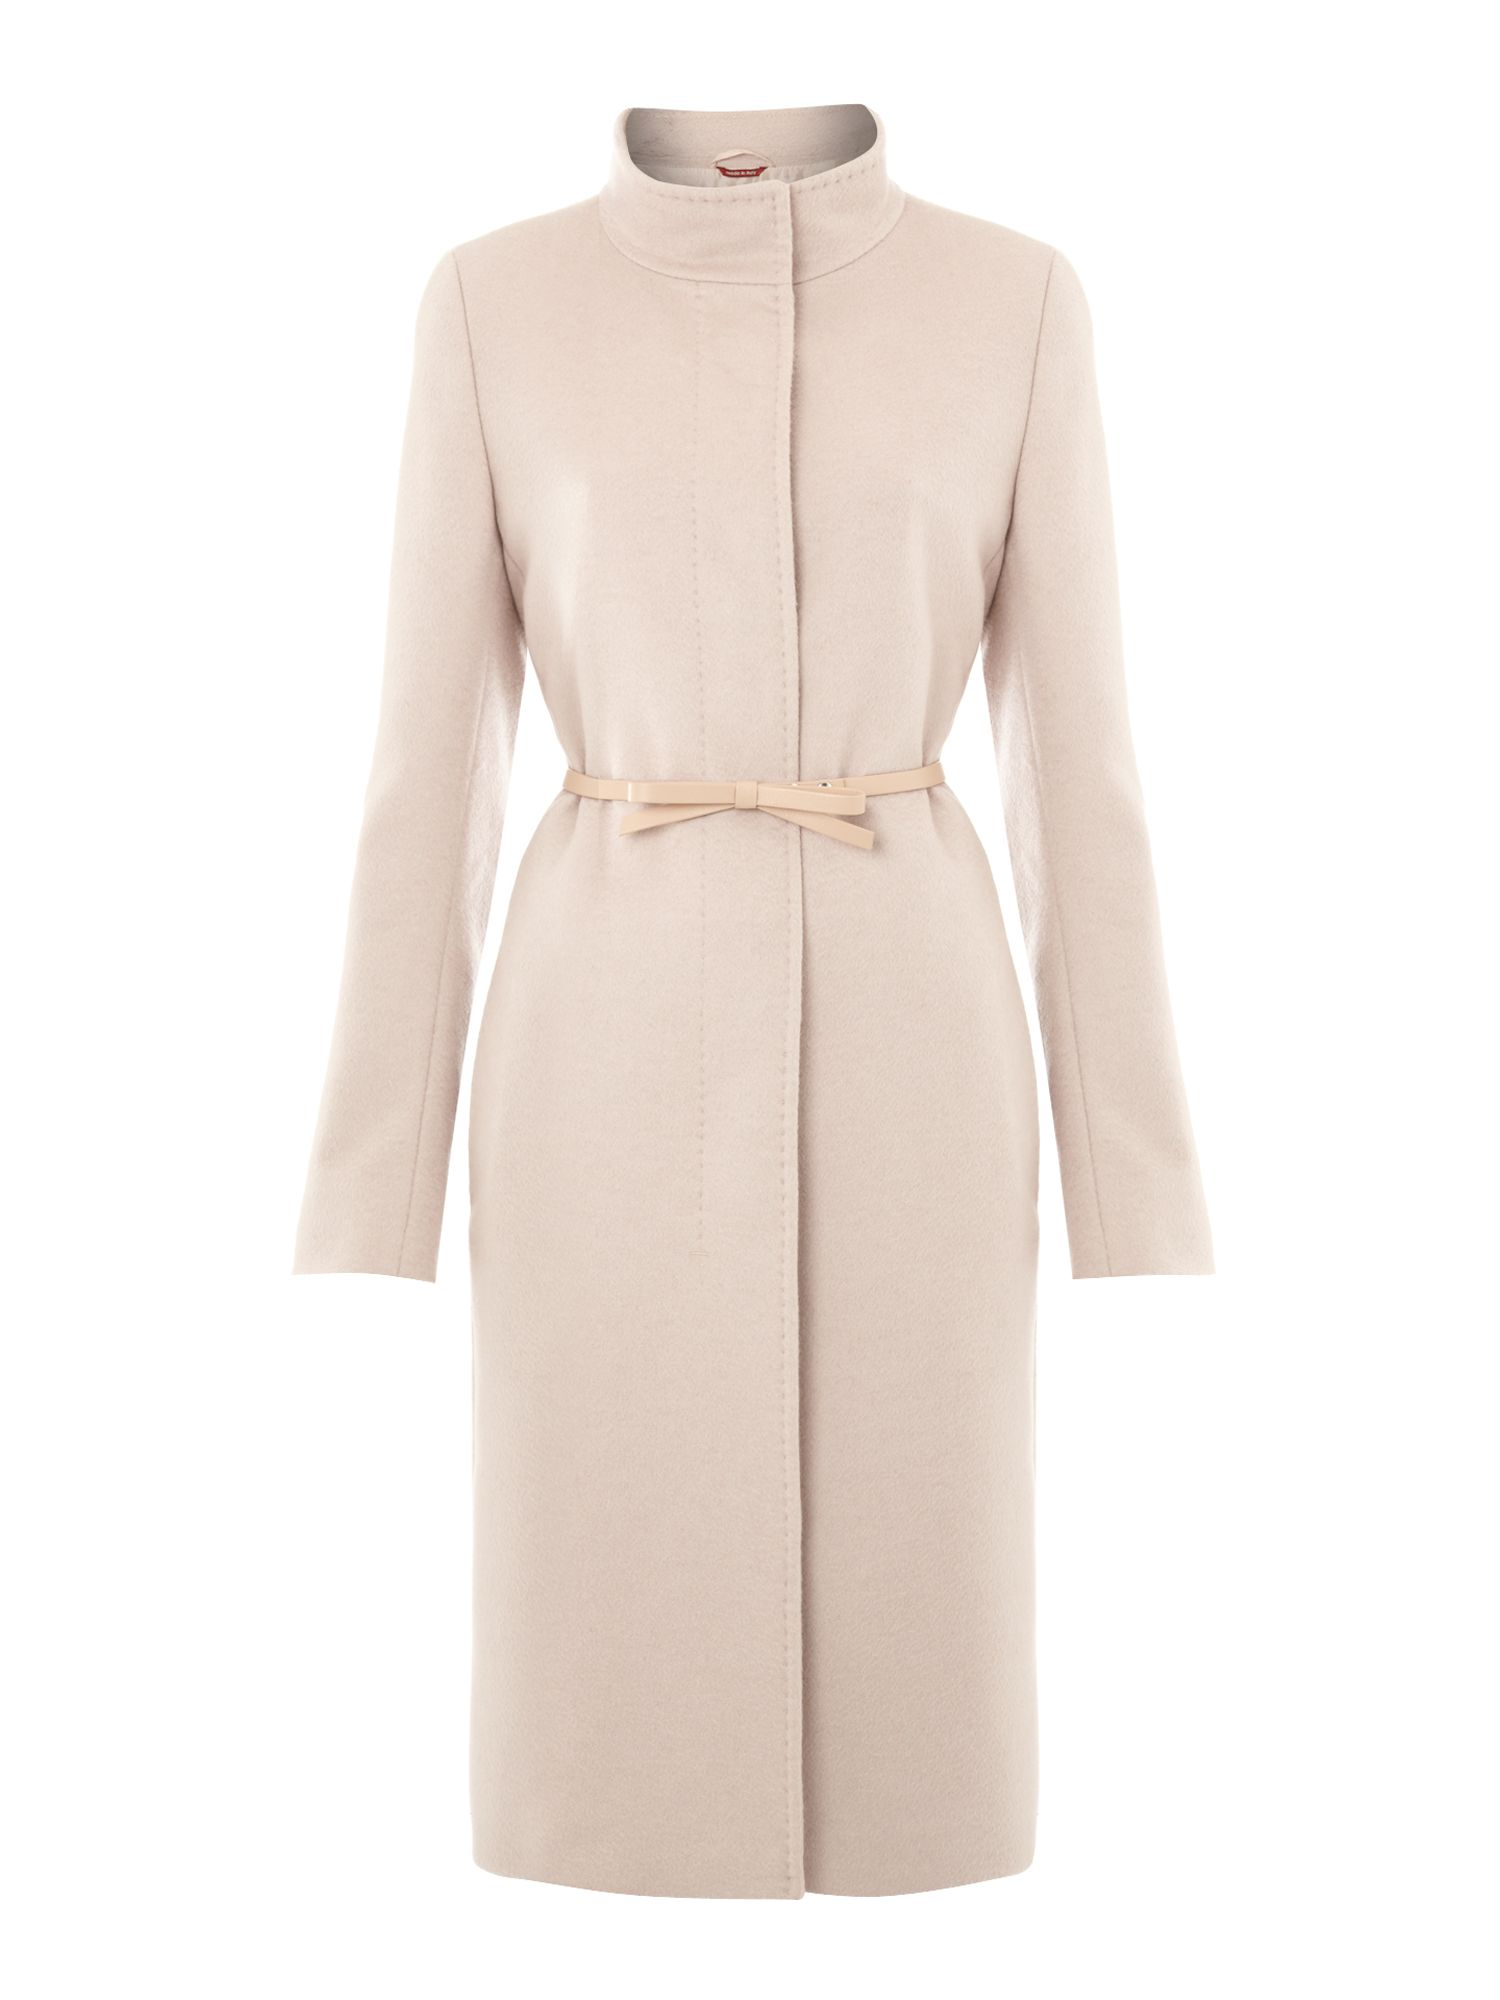 Kate cashmere coat with belt